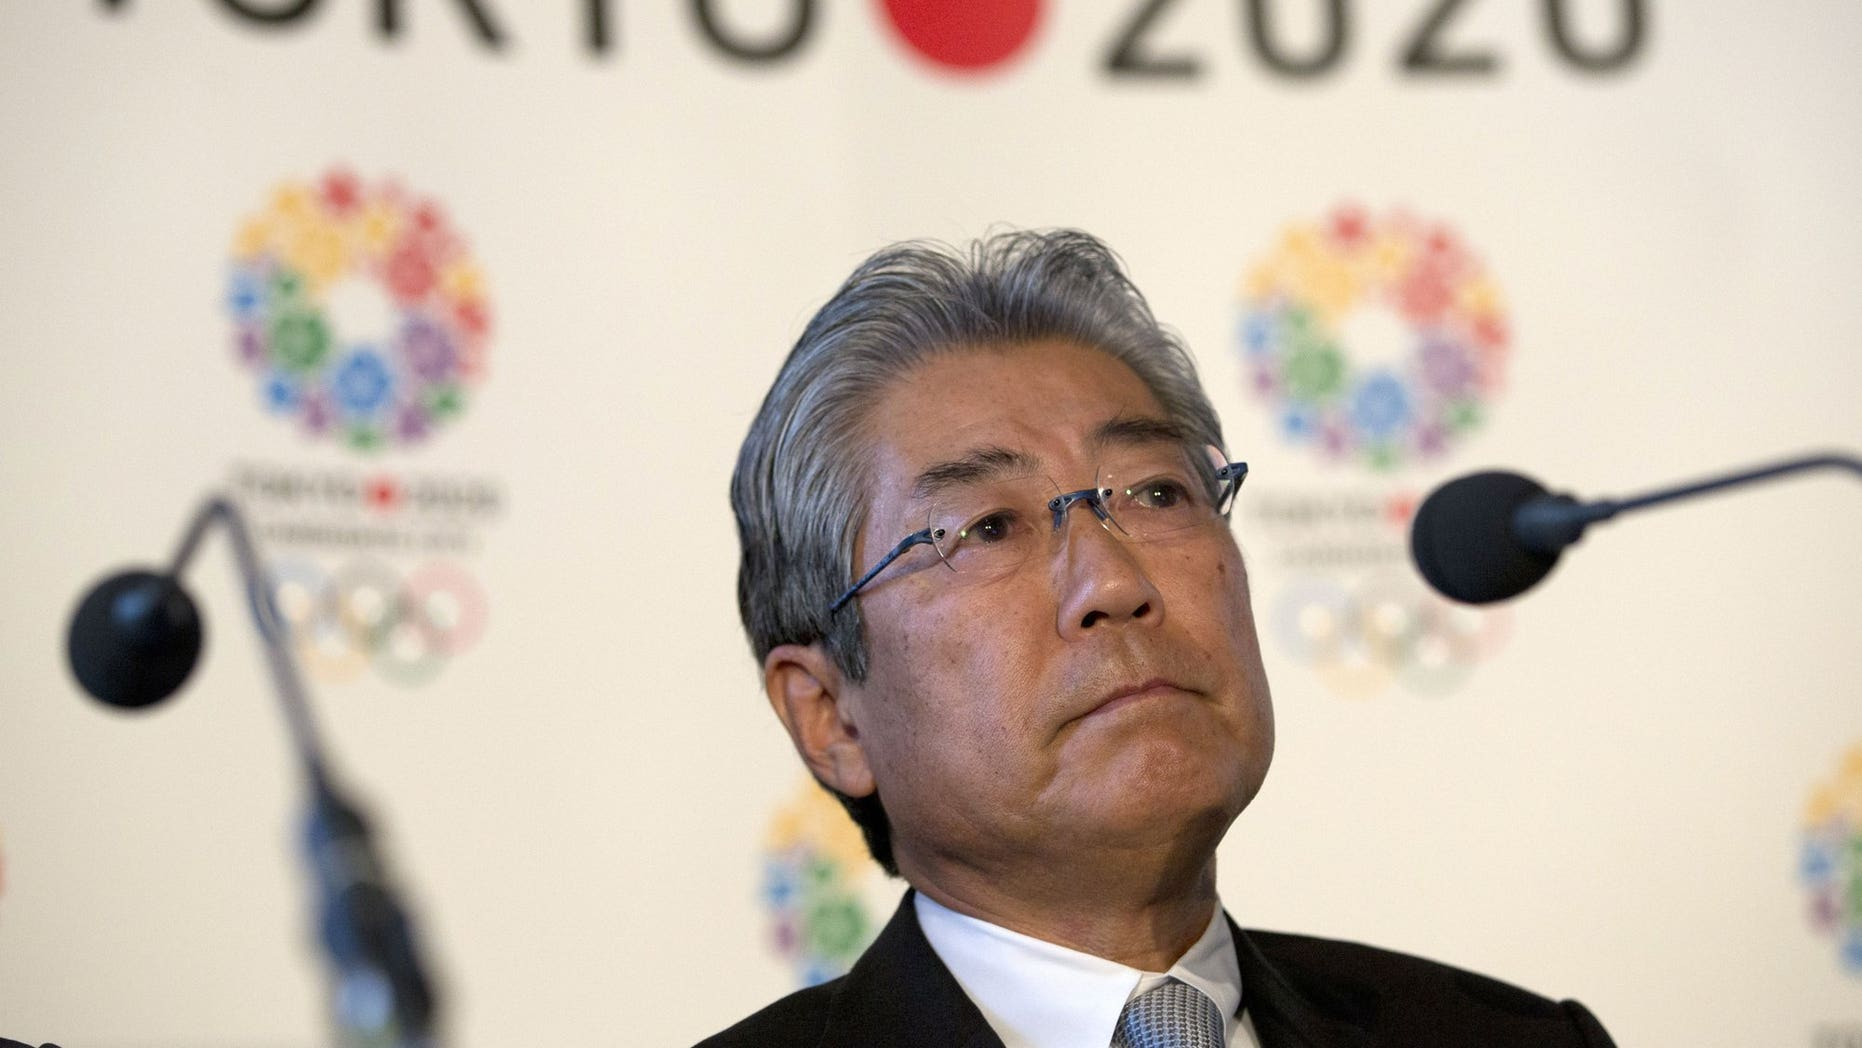 Head of Japan's Olympic Committee indicted in France over corruption allegations class=